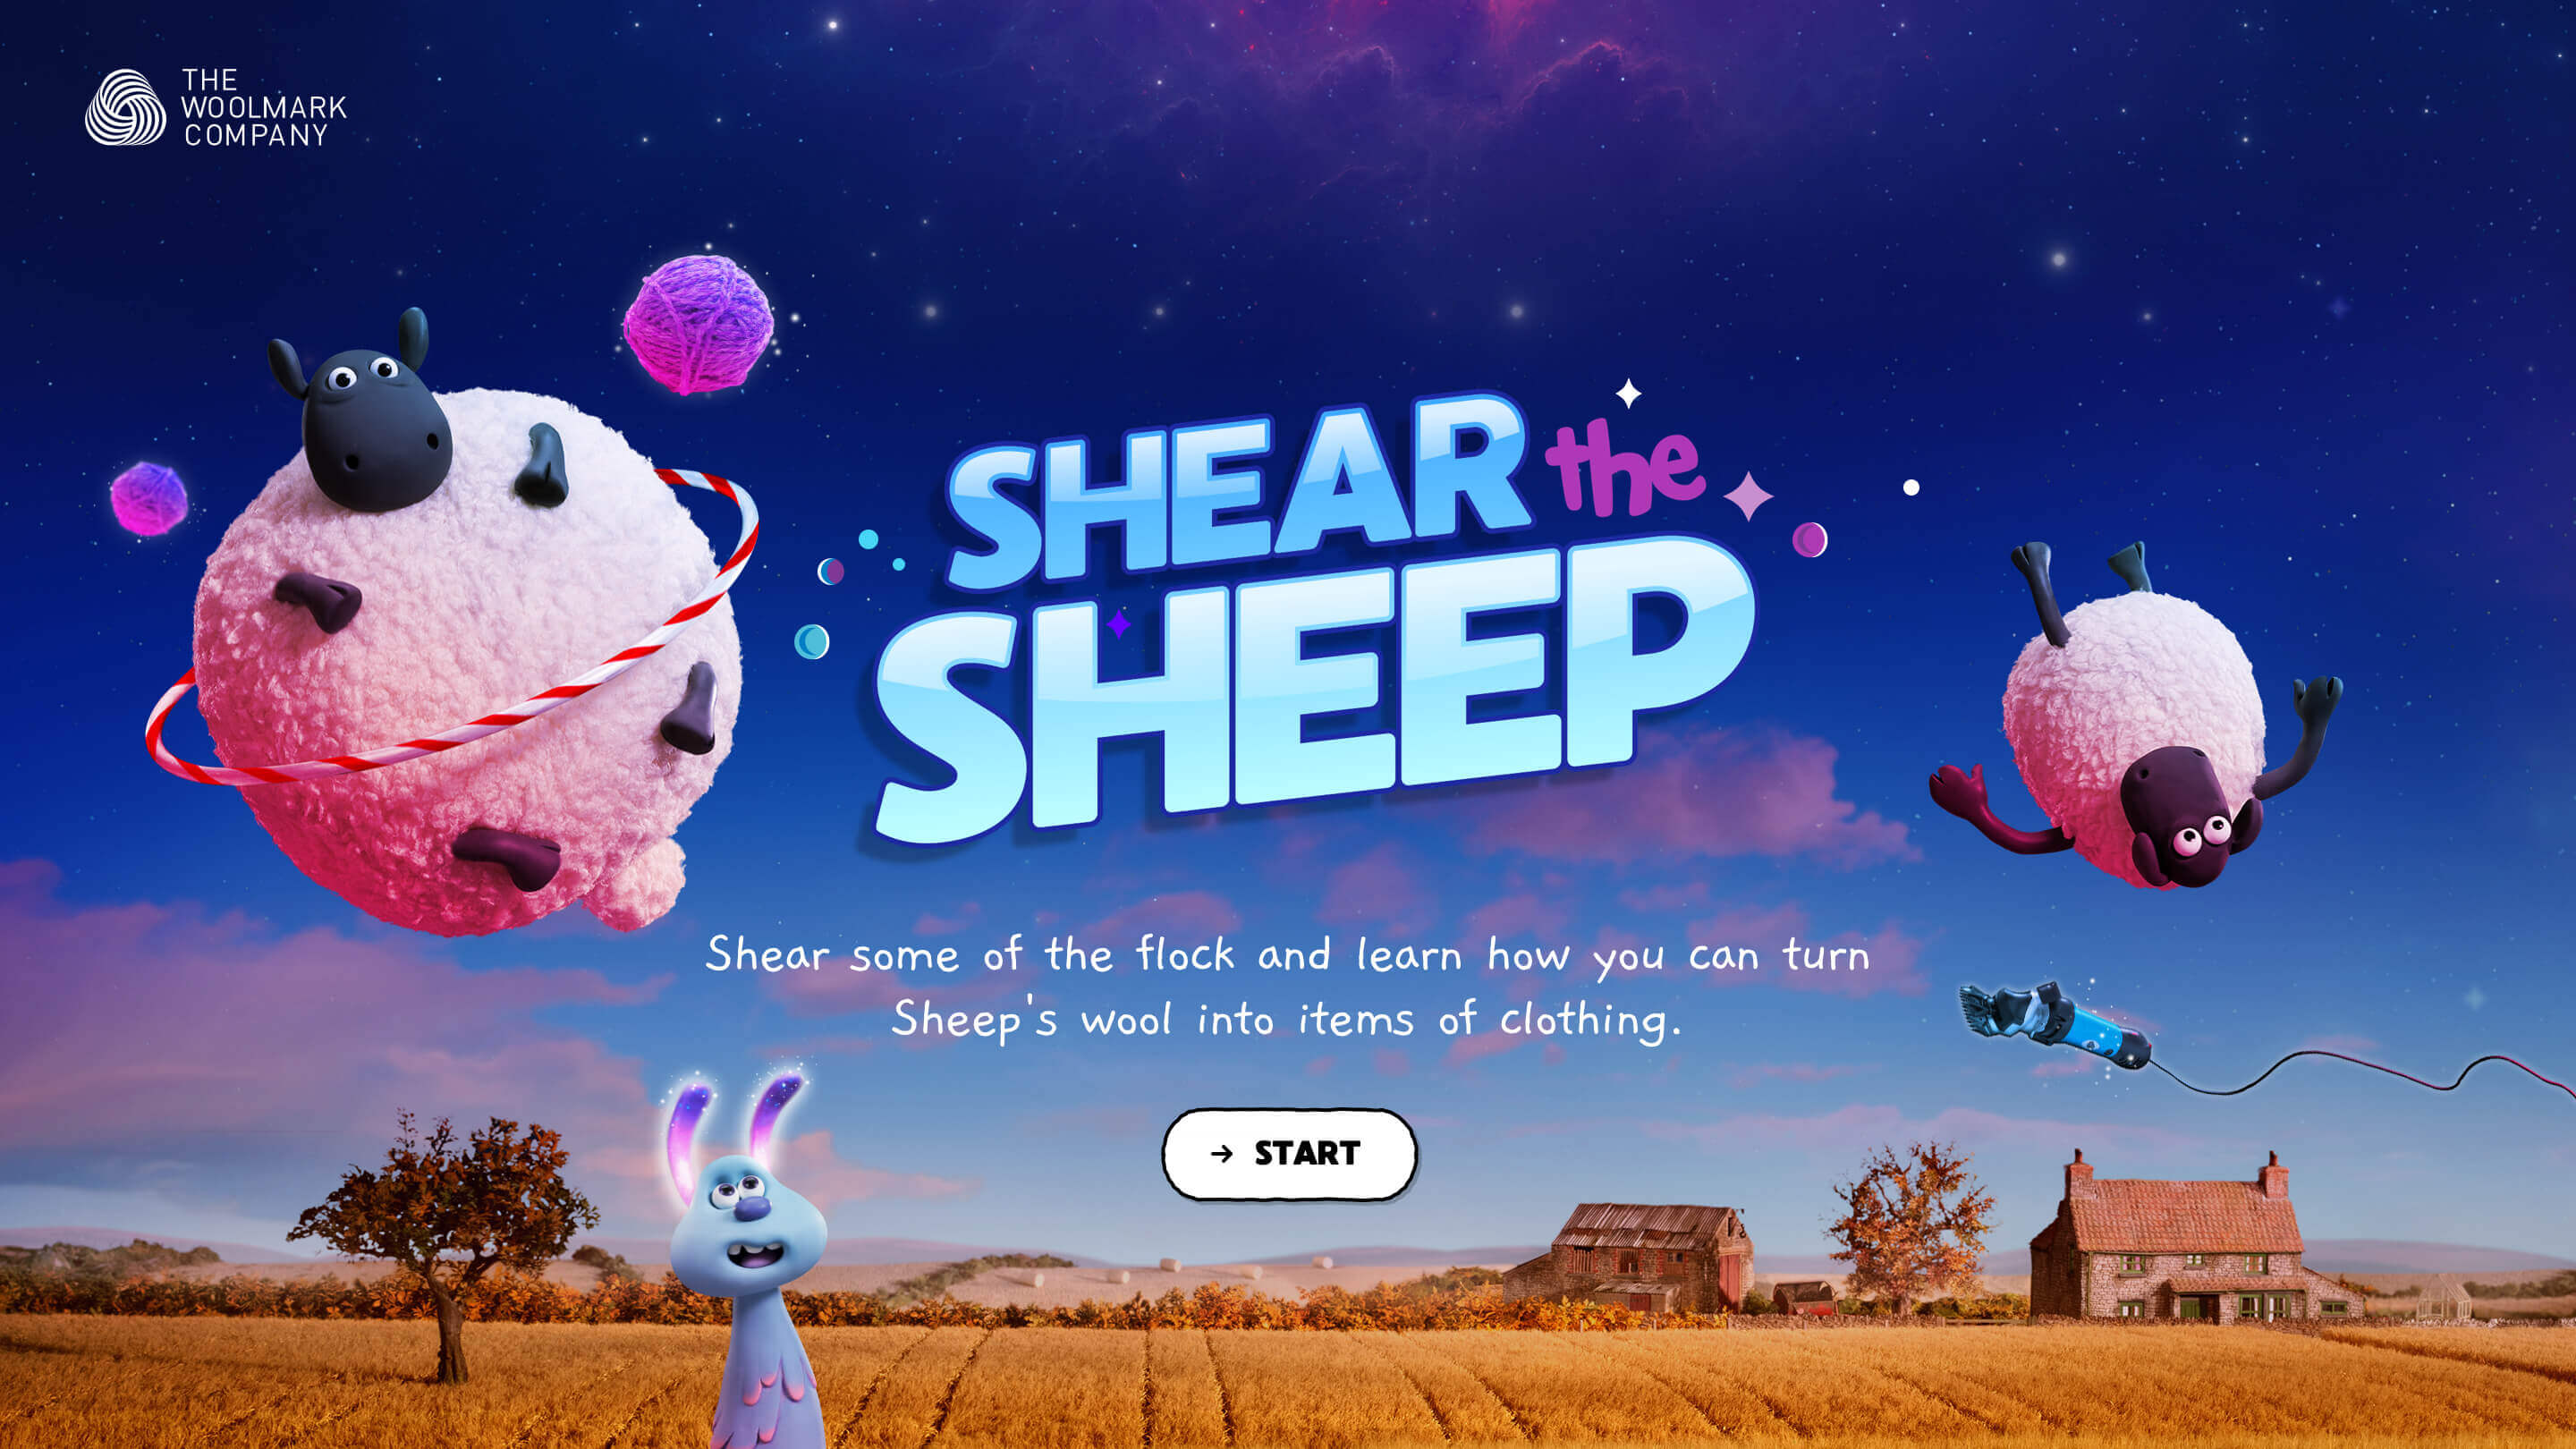 Shear the Sheep